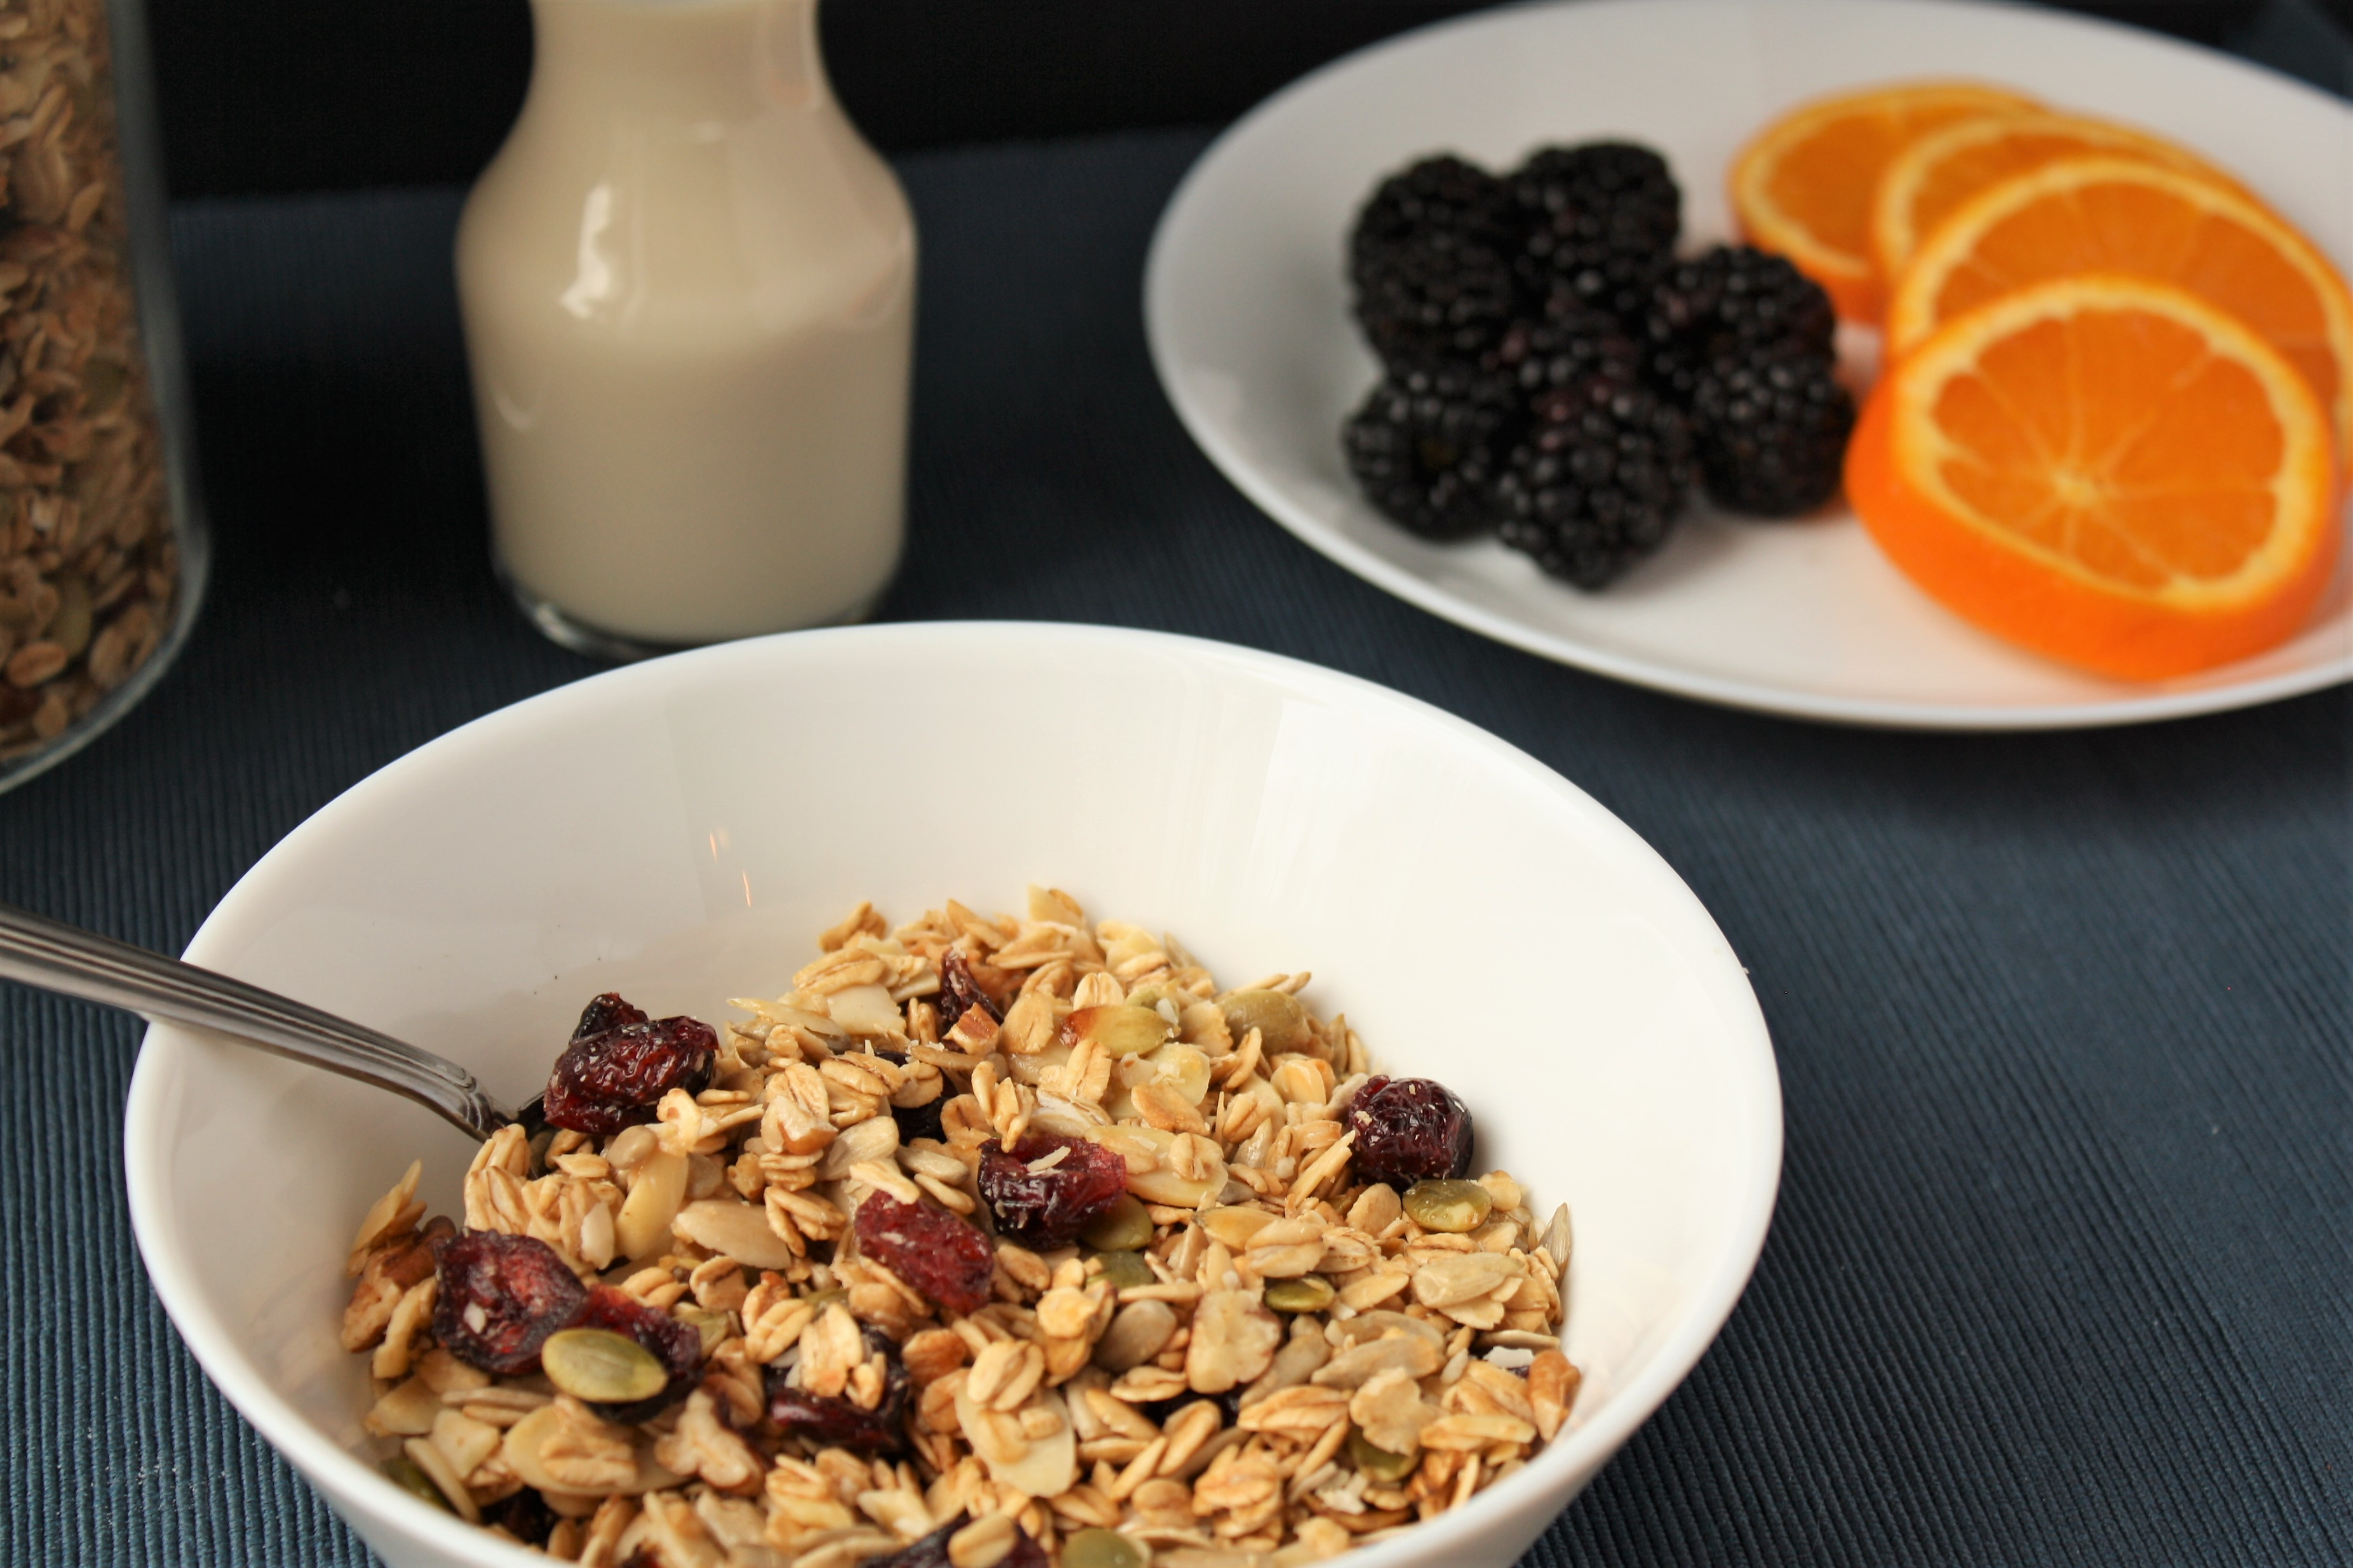 Cranberry Maple Nut Granola…breakfast of champs!